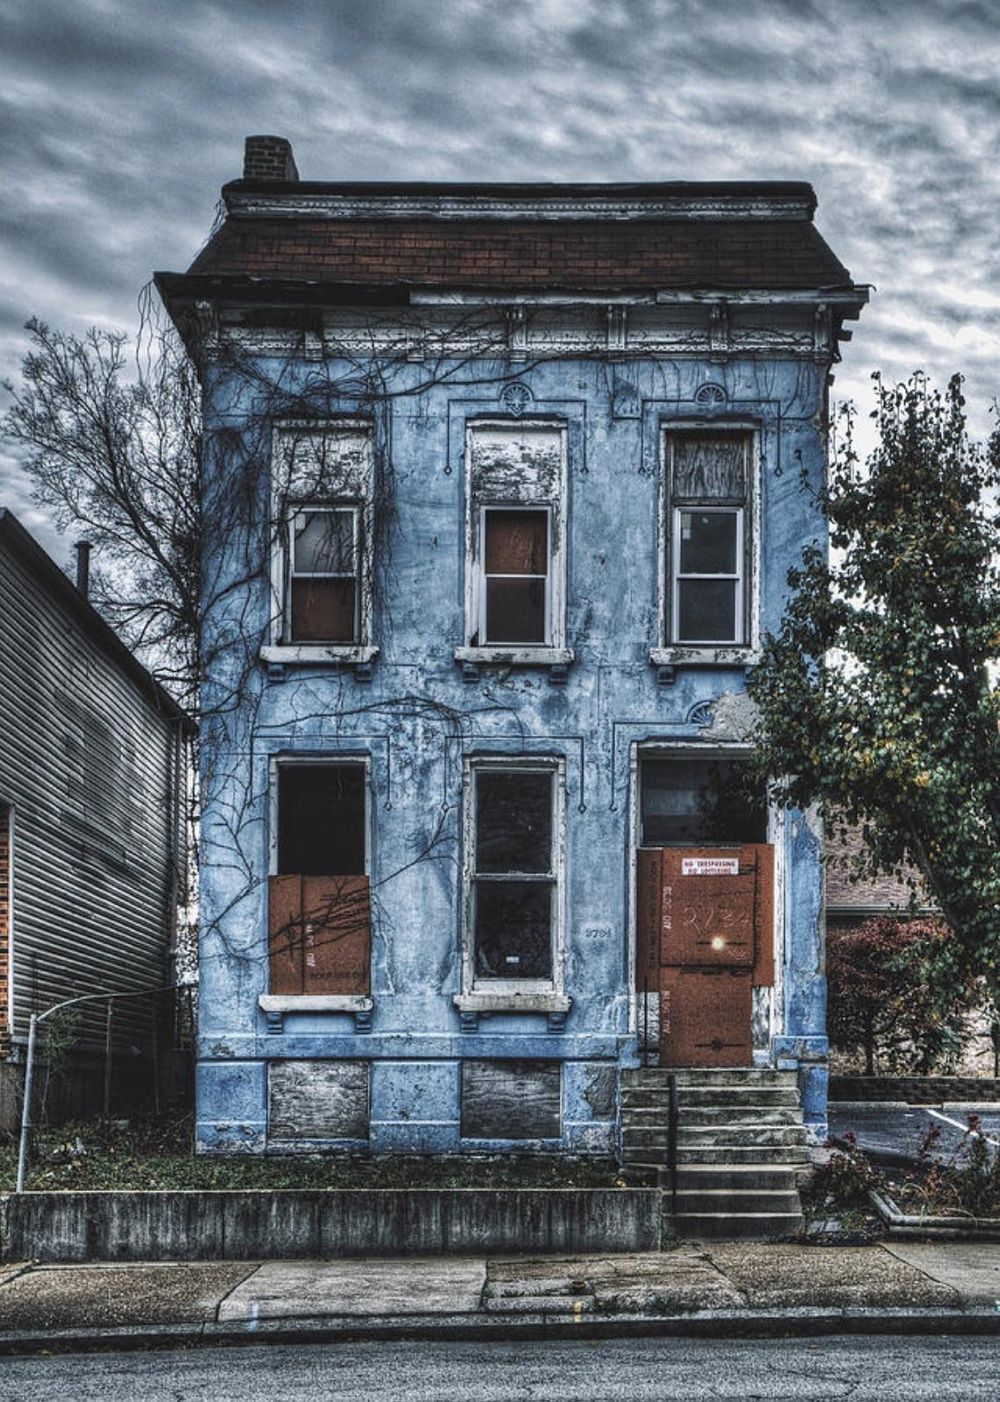 A Restoration of Old and Abandoned Houses - image 9 - student project